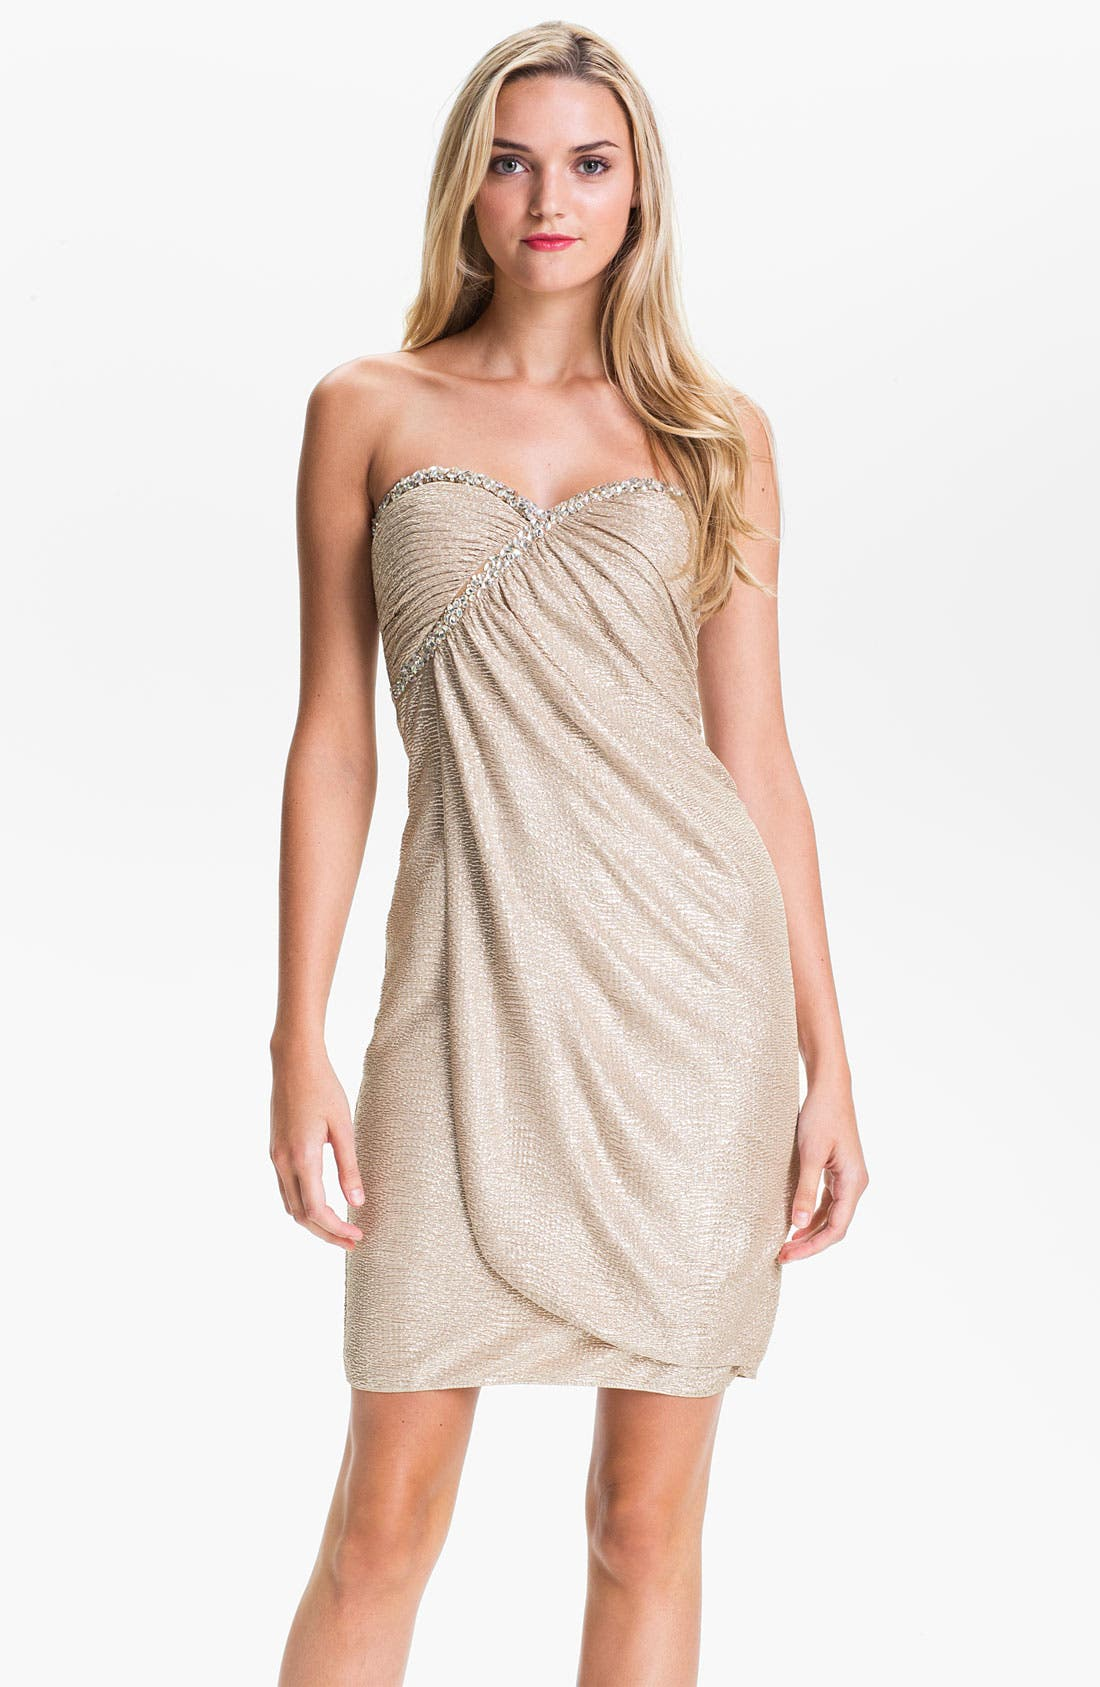 Alternate Image 1 Selected - Hailey by Adrianna Papell Strapless Metallic Sarong Dress